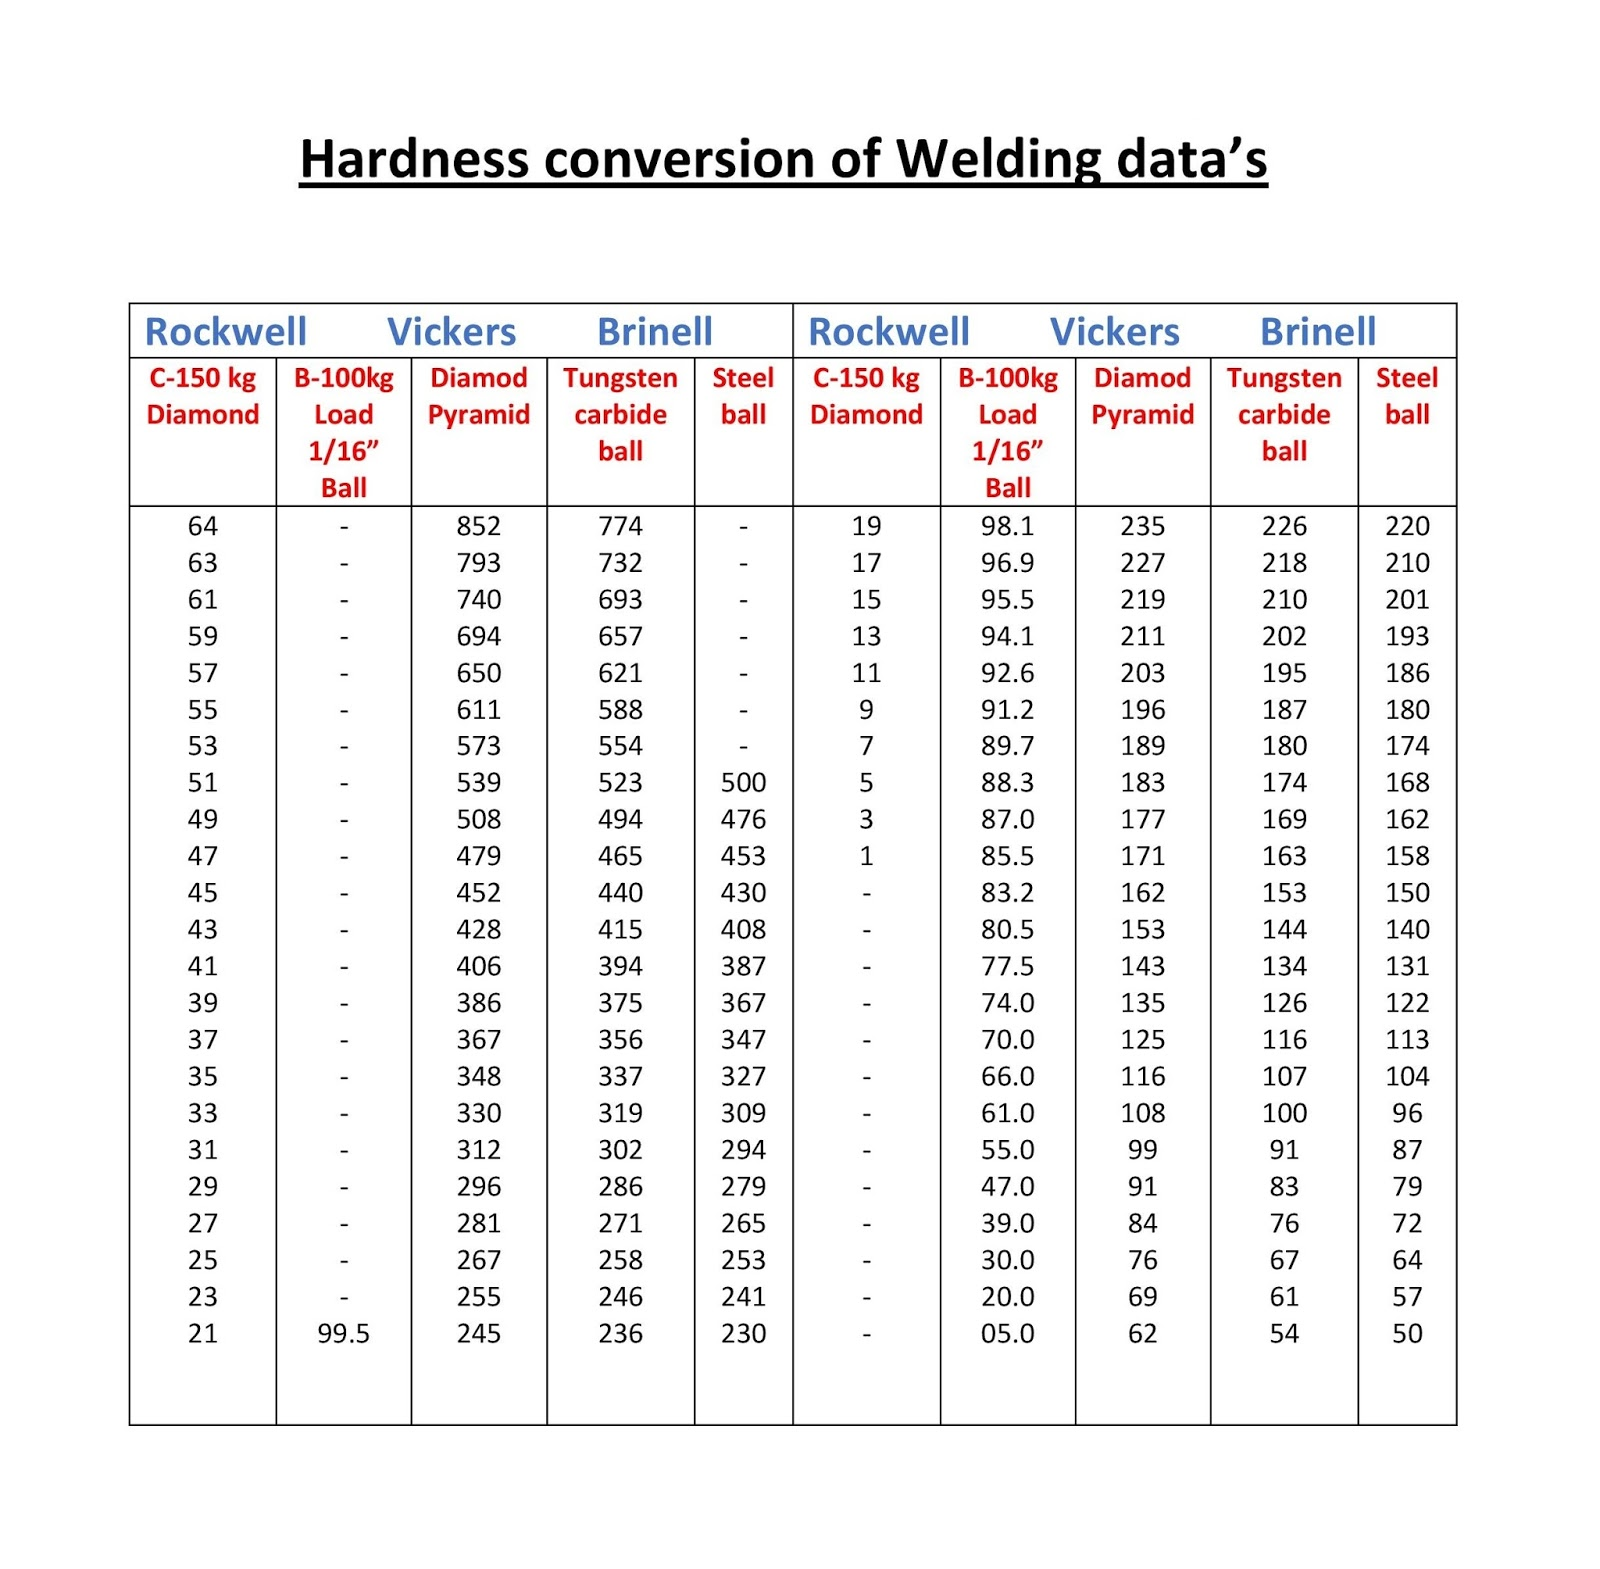 welding hardfacing cladding and cutting of metals 2015